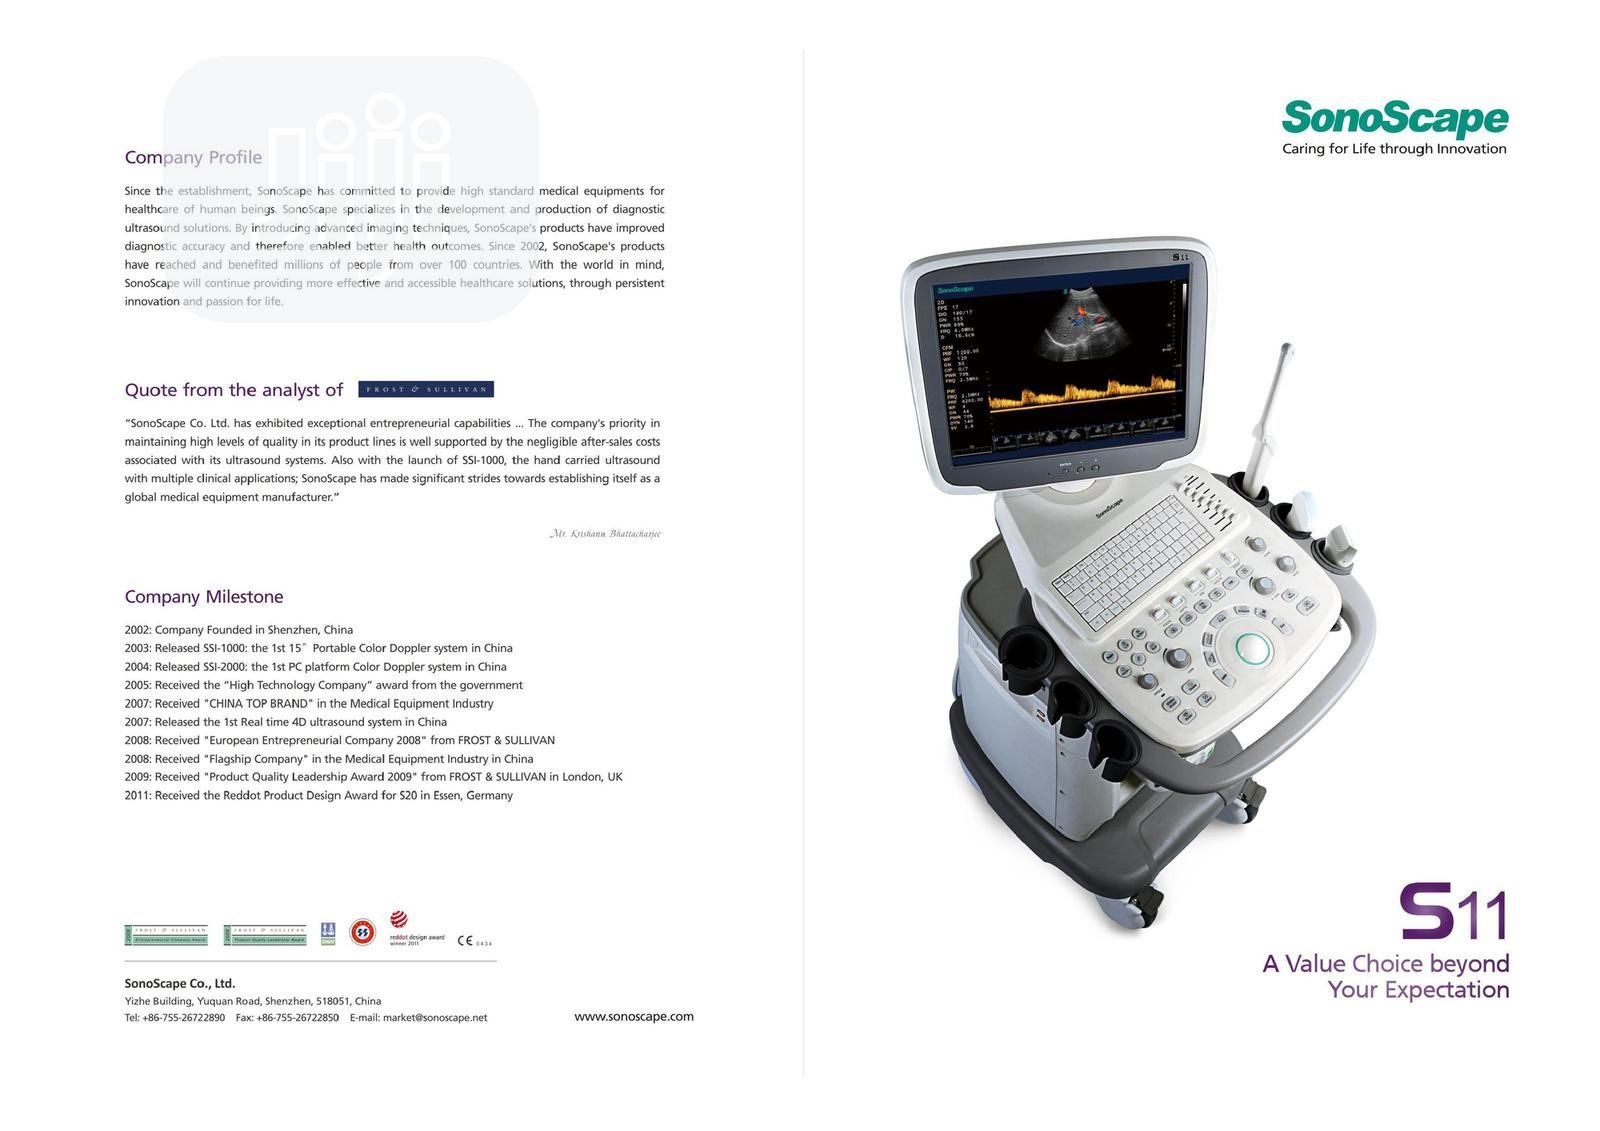 Archive: Sonoscape S11 Color Doppler Ultrasound Machine With 2 Probes